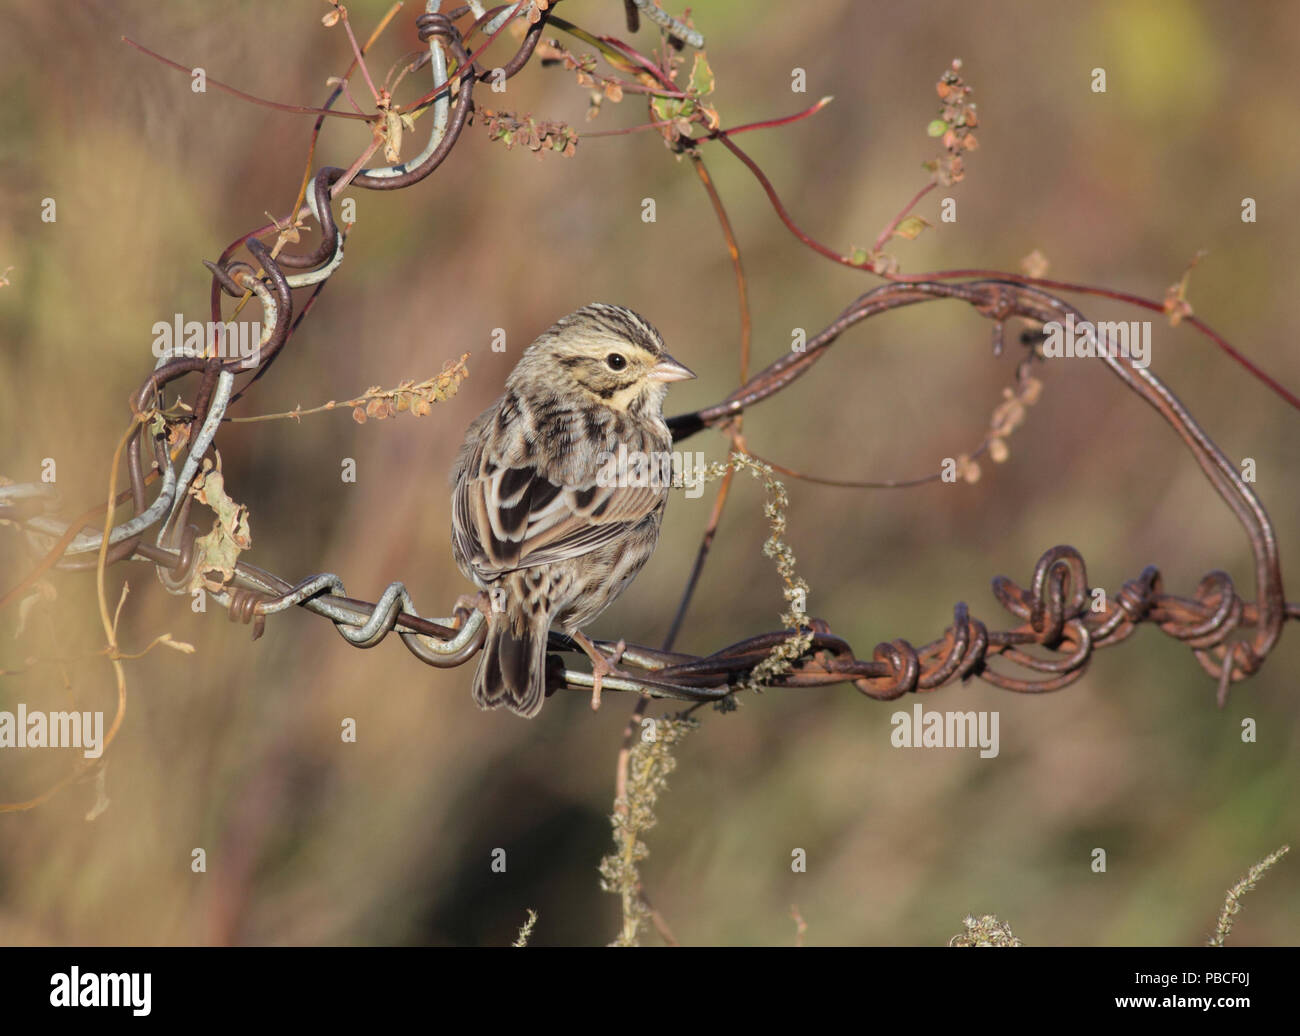 Savannah Sparrow October 16th, 2013 Lincoln County, SD Canon 50D, 400 5.6L - Stock Image